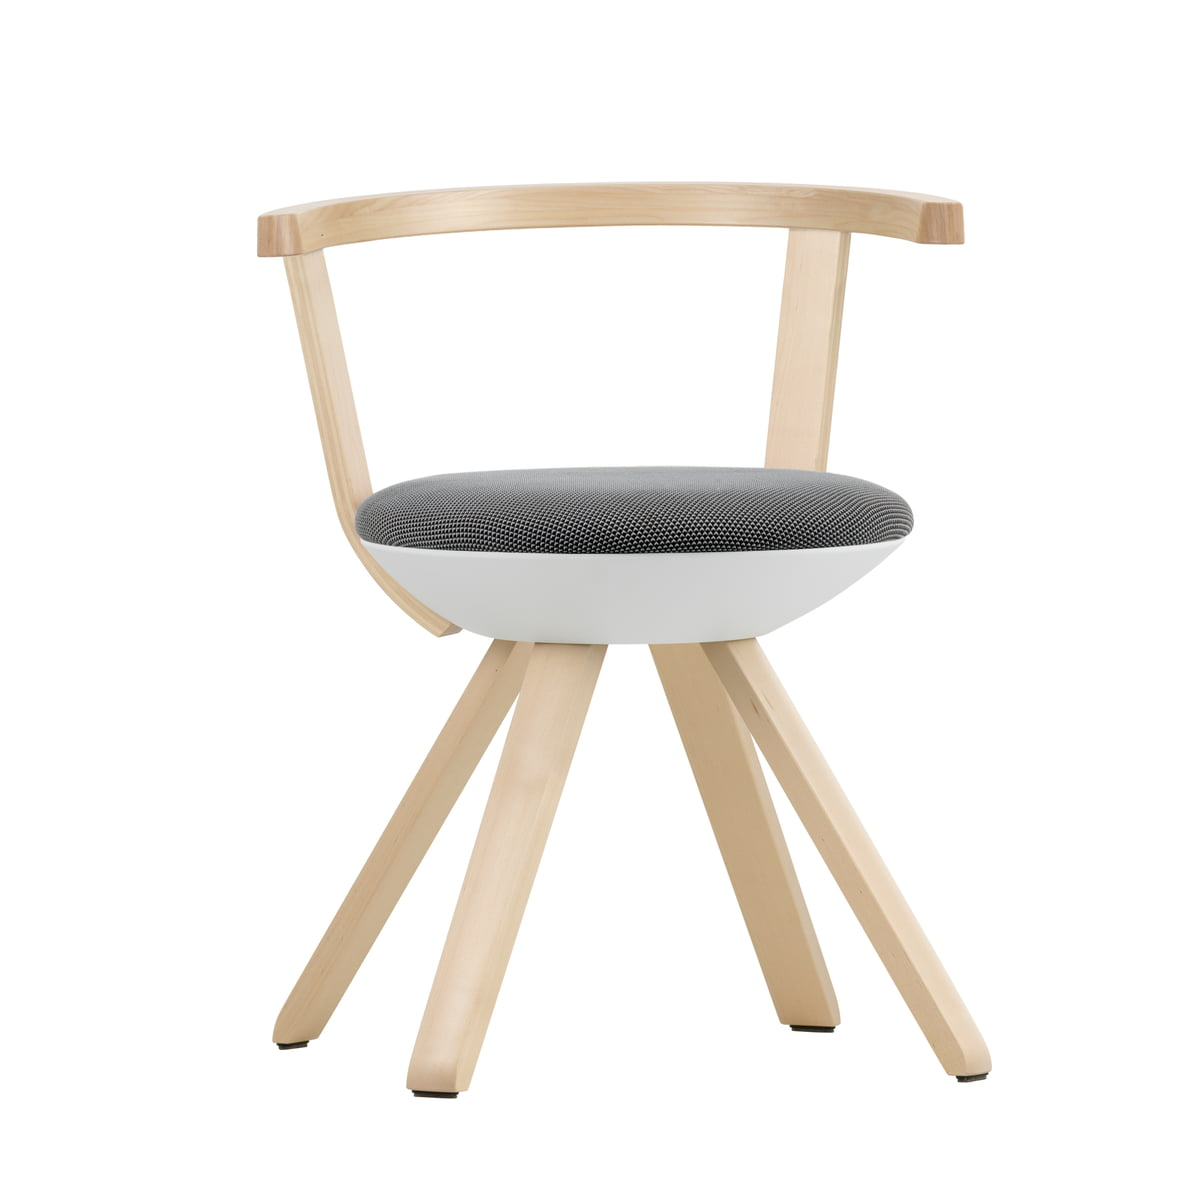 the rival chair by artek in our interior design shop